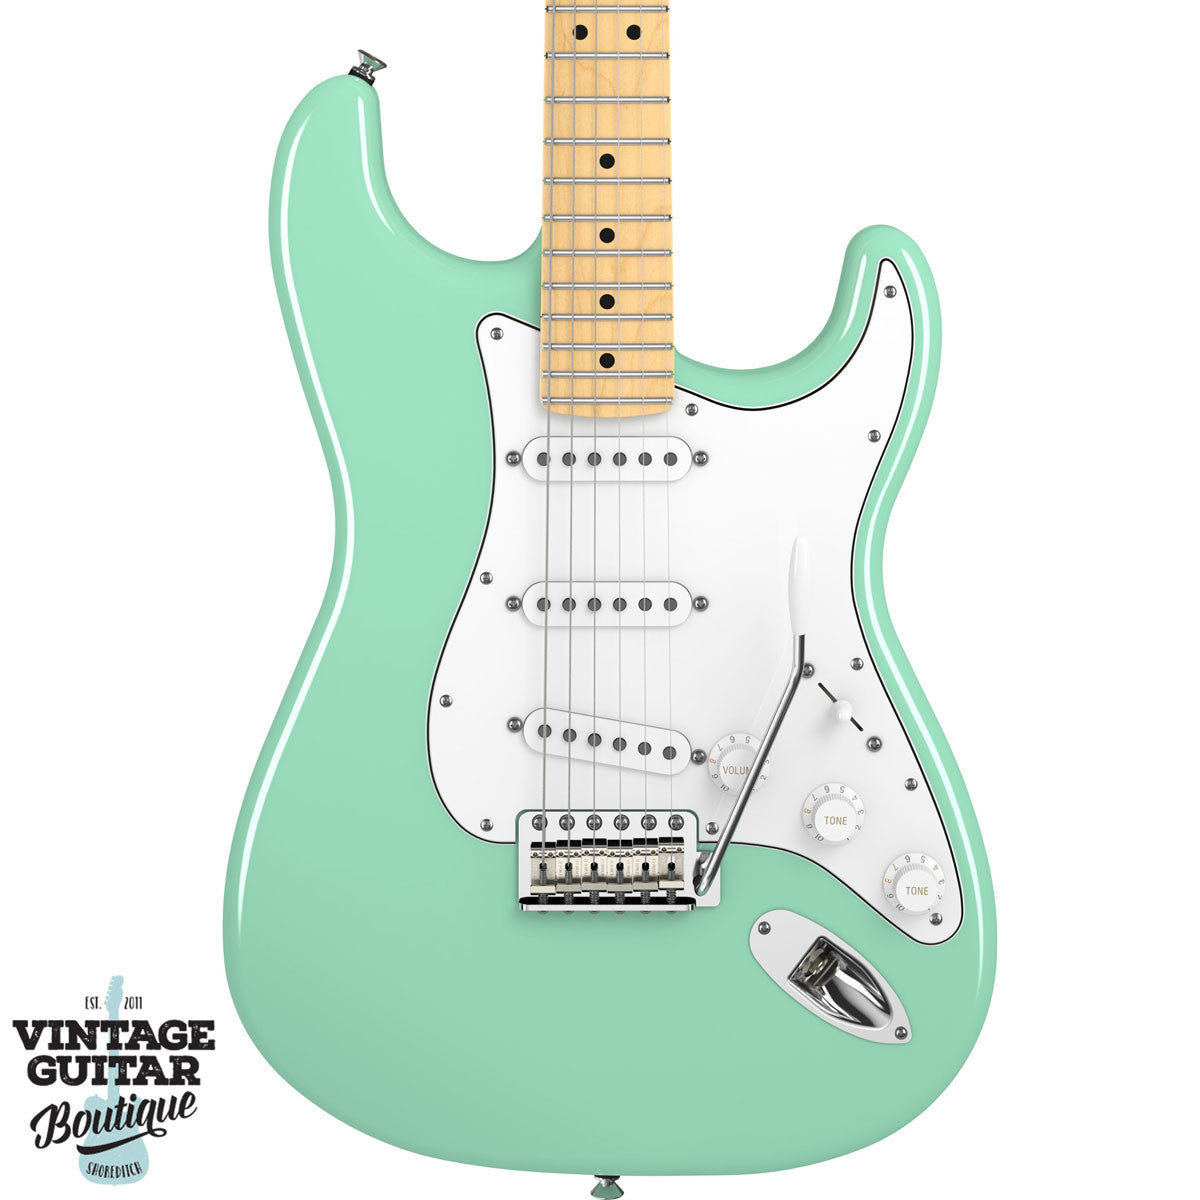 Fender American Special Stratocaster - Maple - Surf Green - Vintage Guitar Boutique - 3